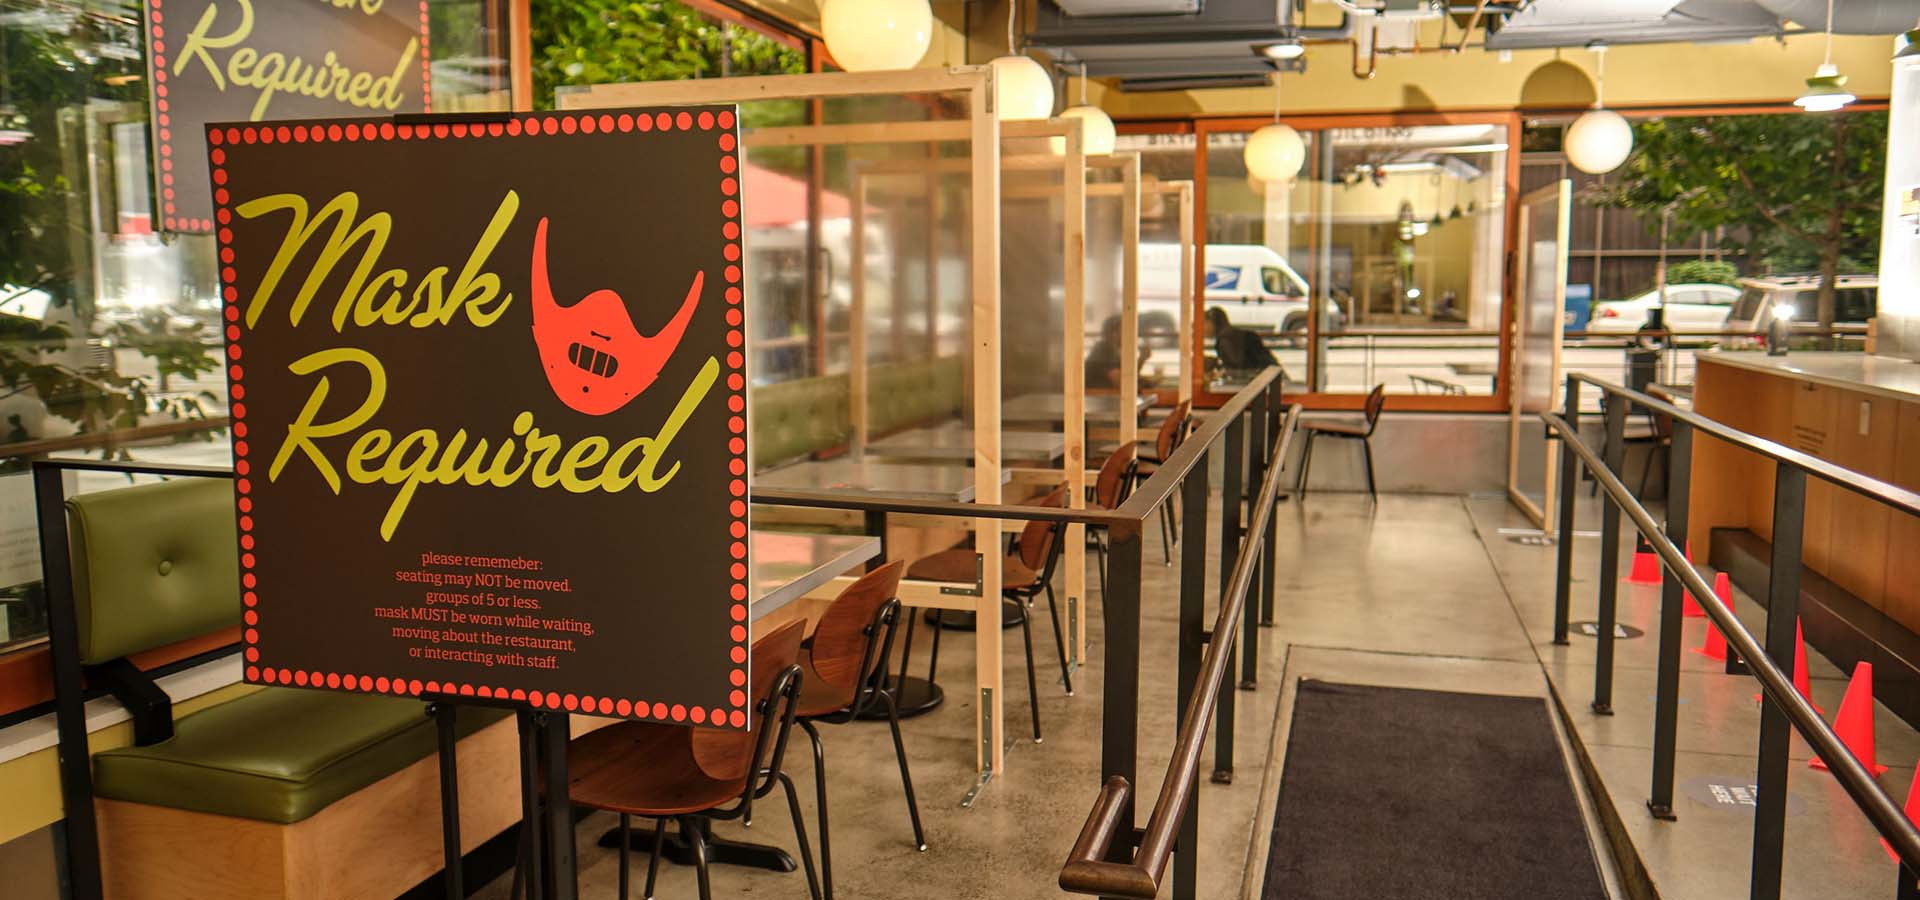 Interior of the Skillet restaurant with hostess sign indicating you must wear a mask.